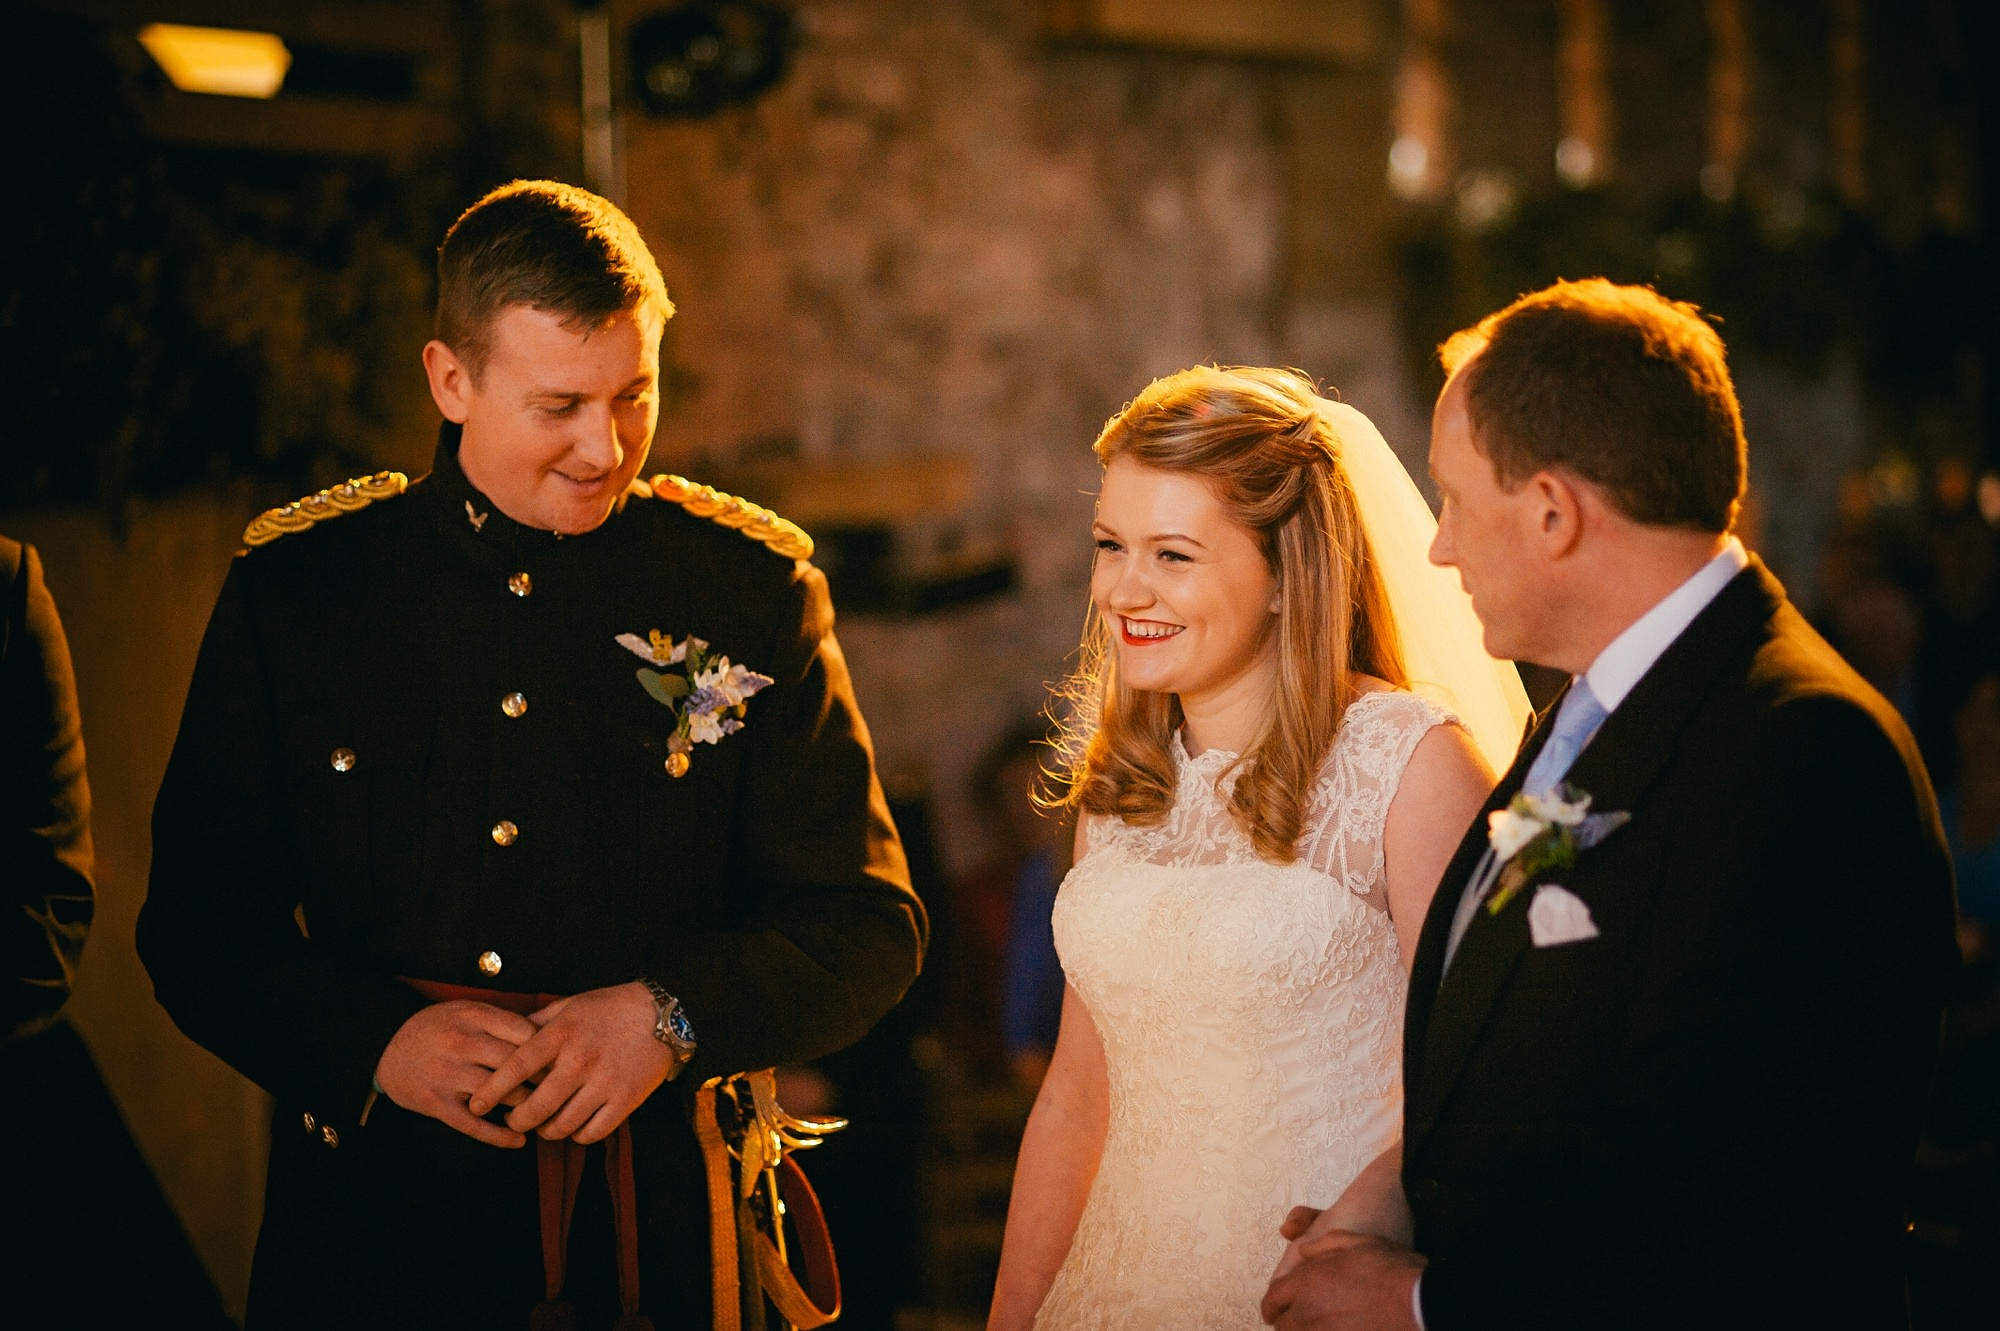 military groom with bride during ceremony